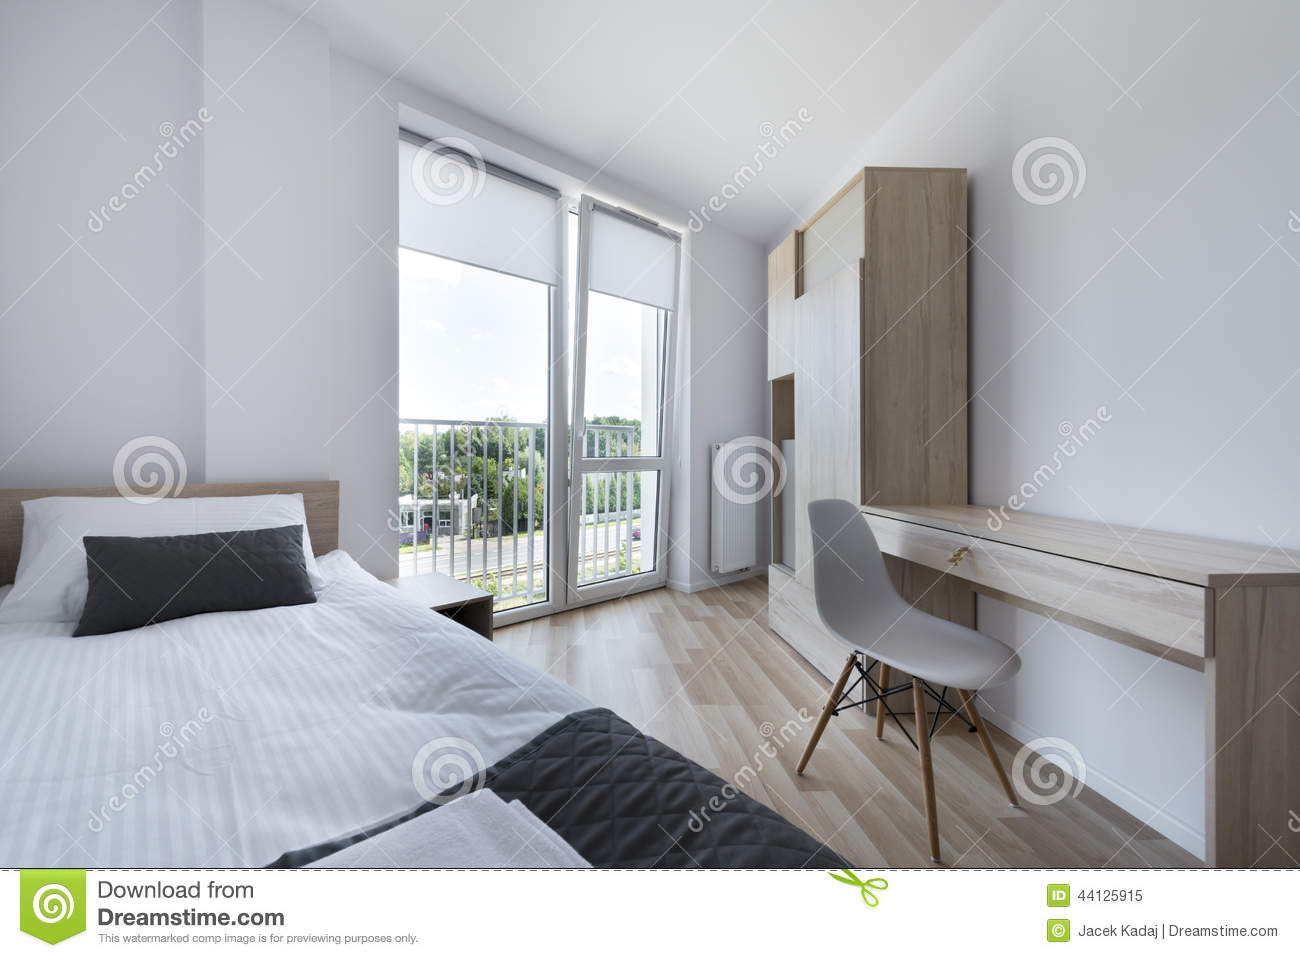 chambre coucher propre et moderne dans le style scandinave photo stock image 44125915. Black Bedroom Furniture Sets. Home Design Ideas